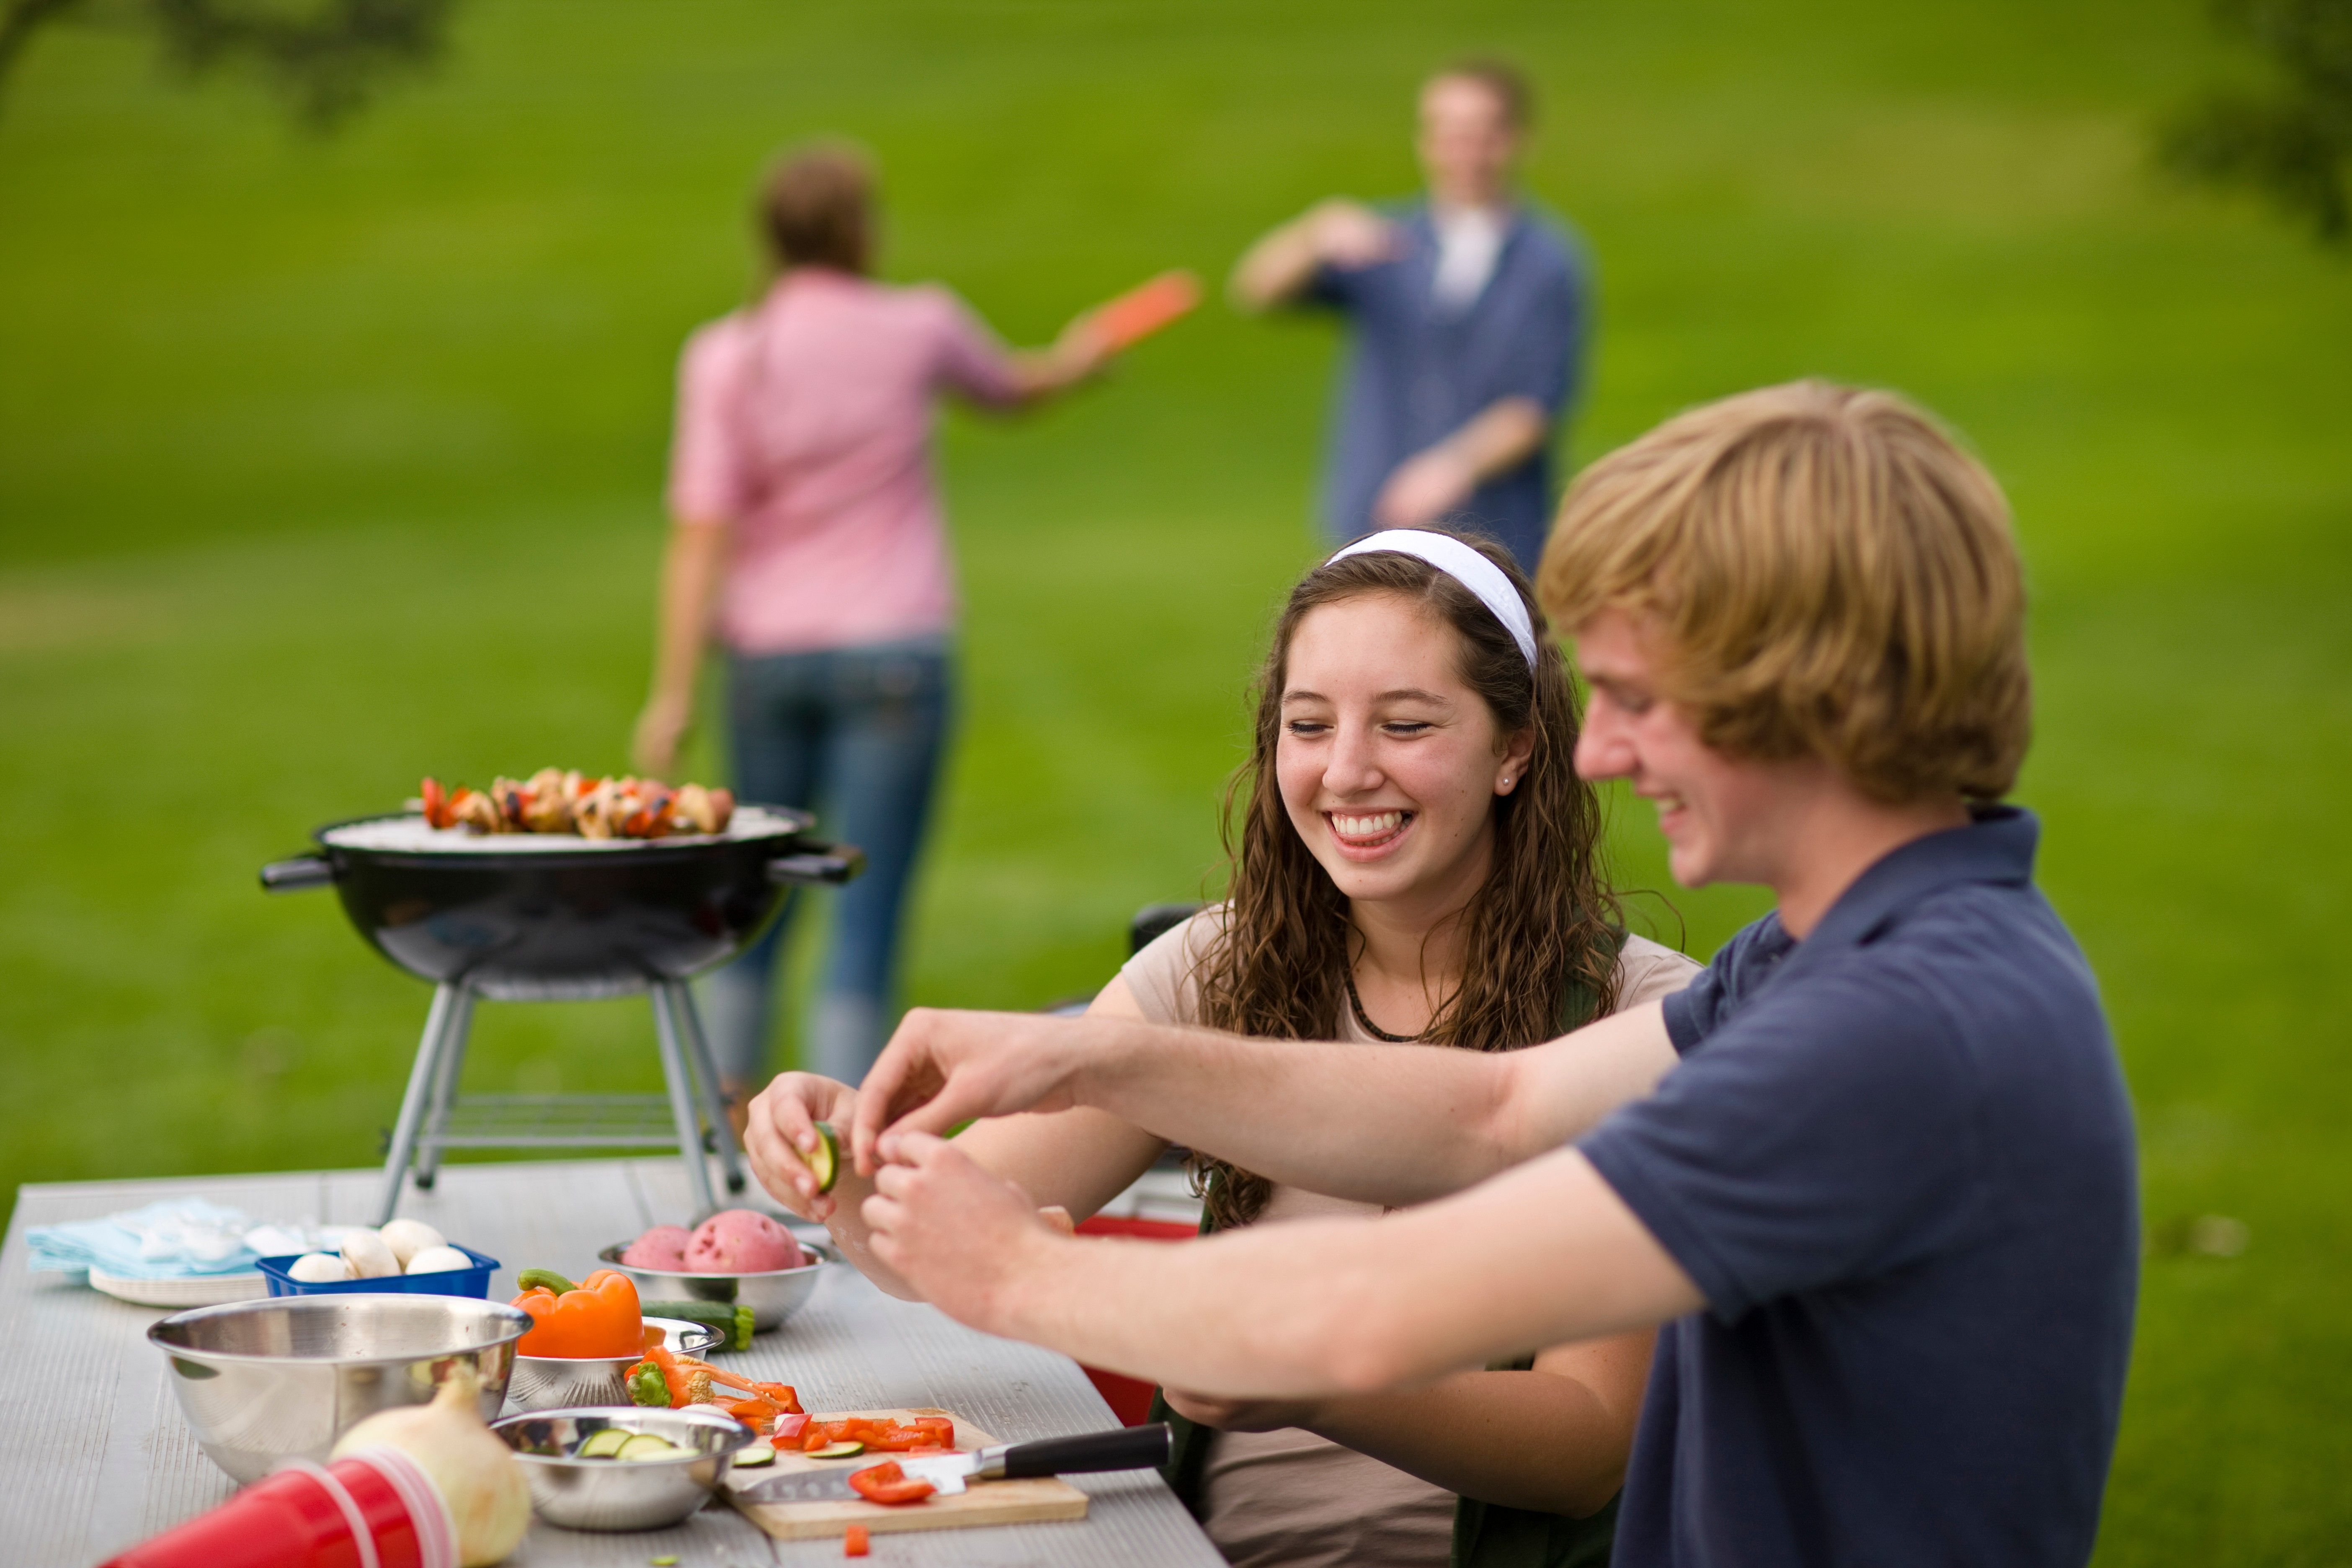 A teenage couple preparing food on a table at the park.